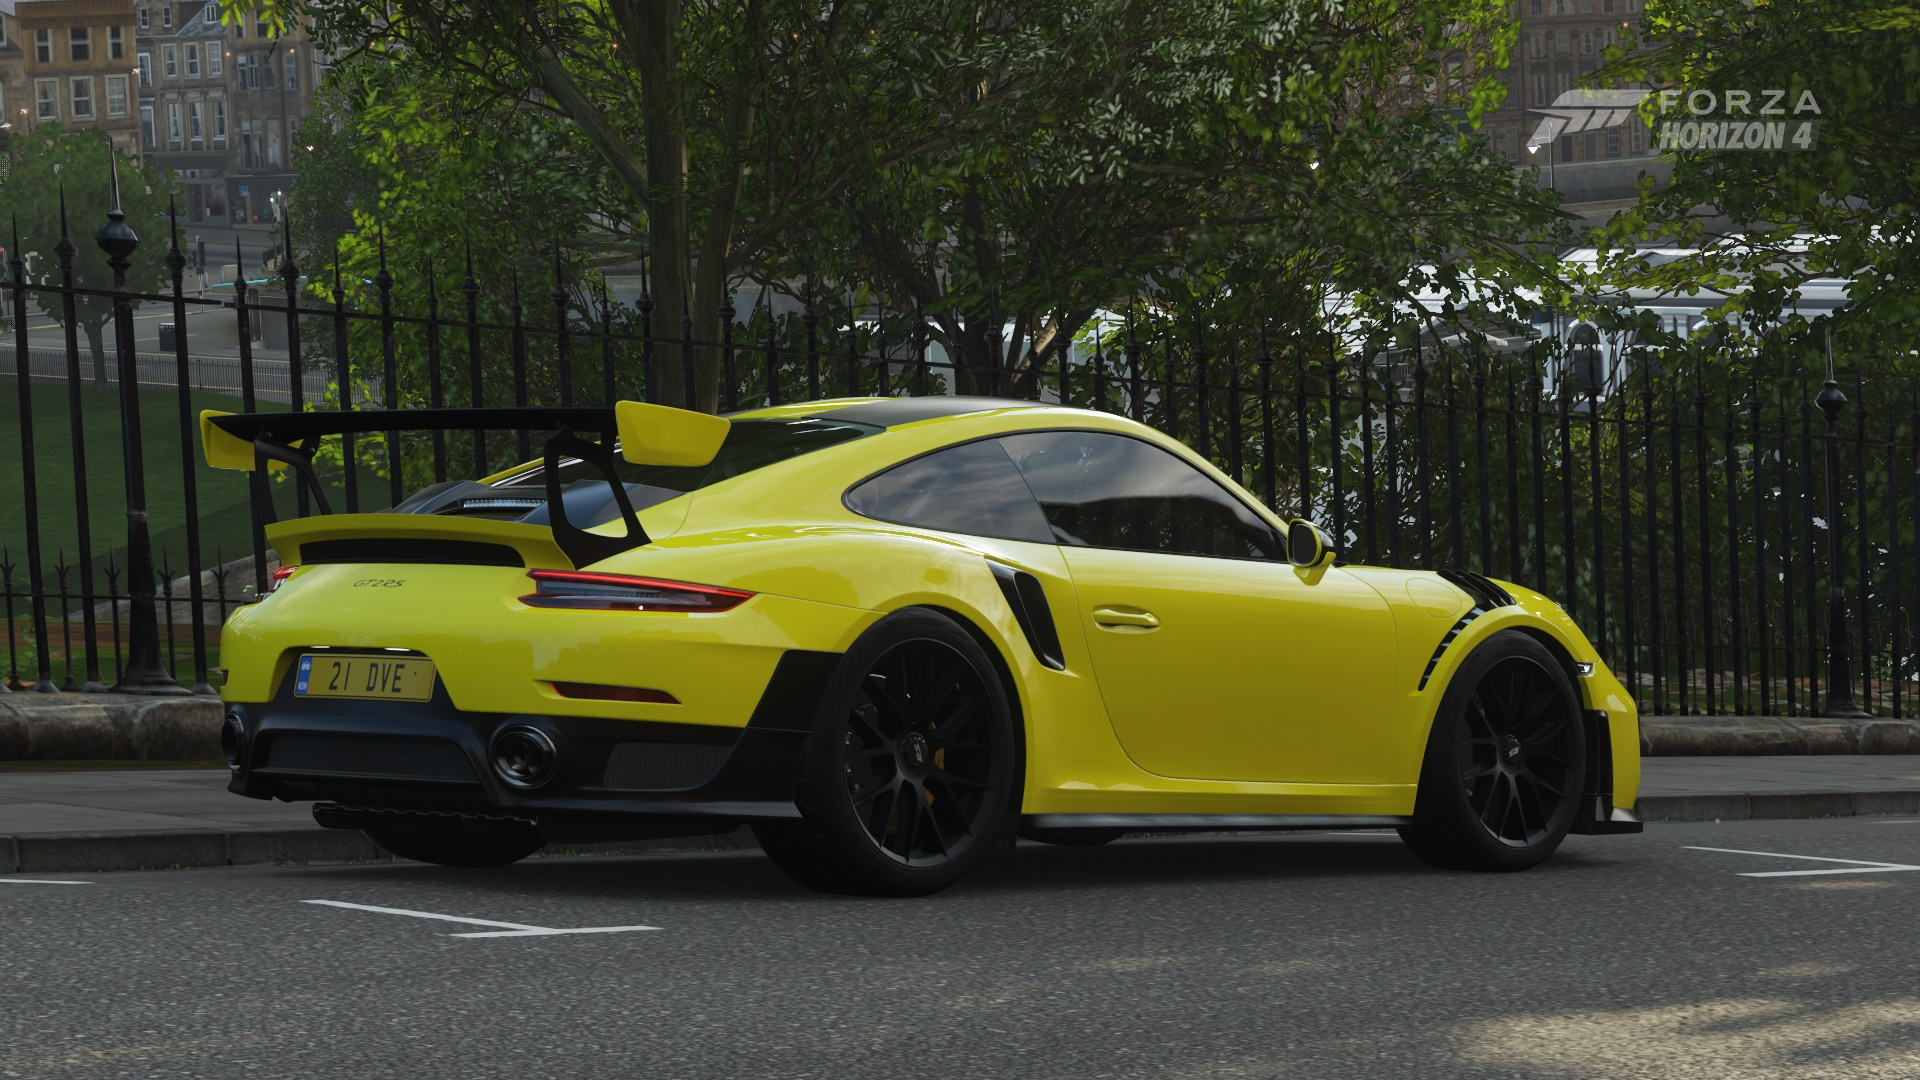 Who knew the GT2 looked so good in yellow?